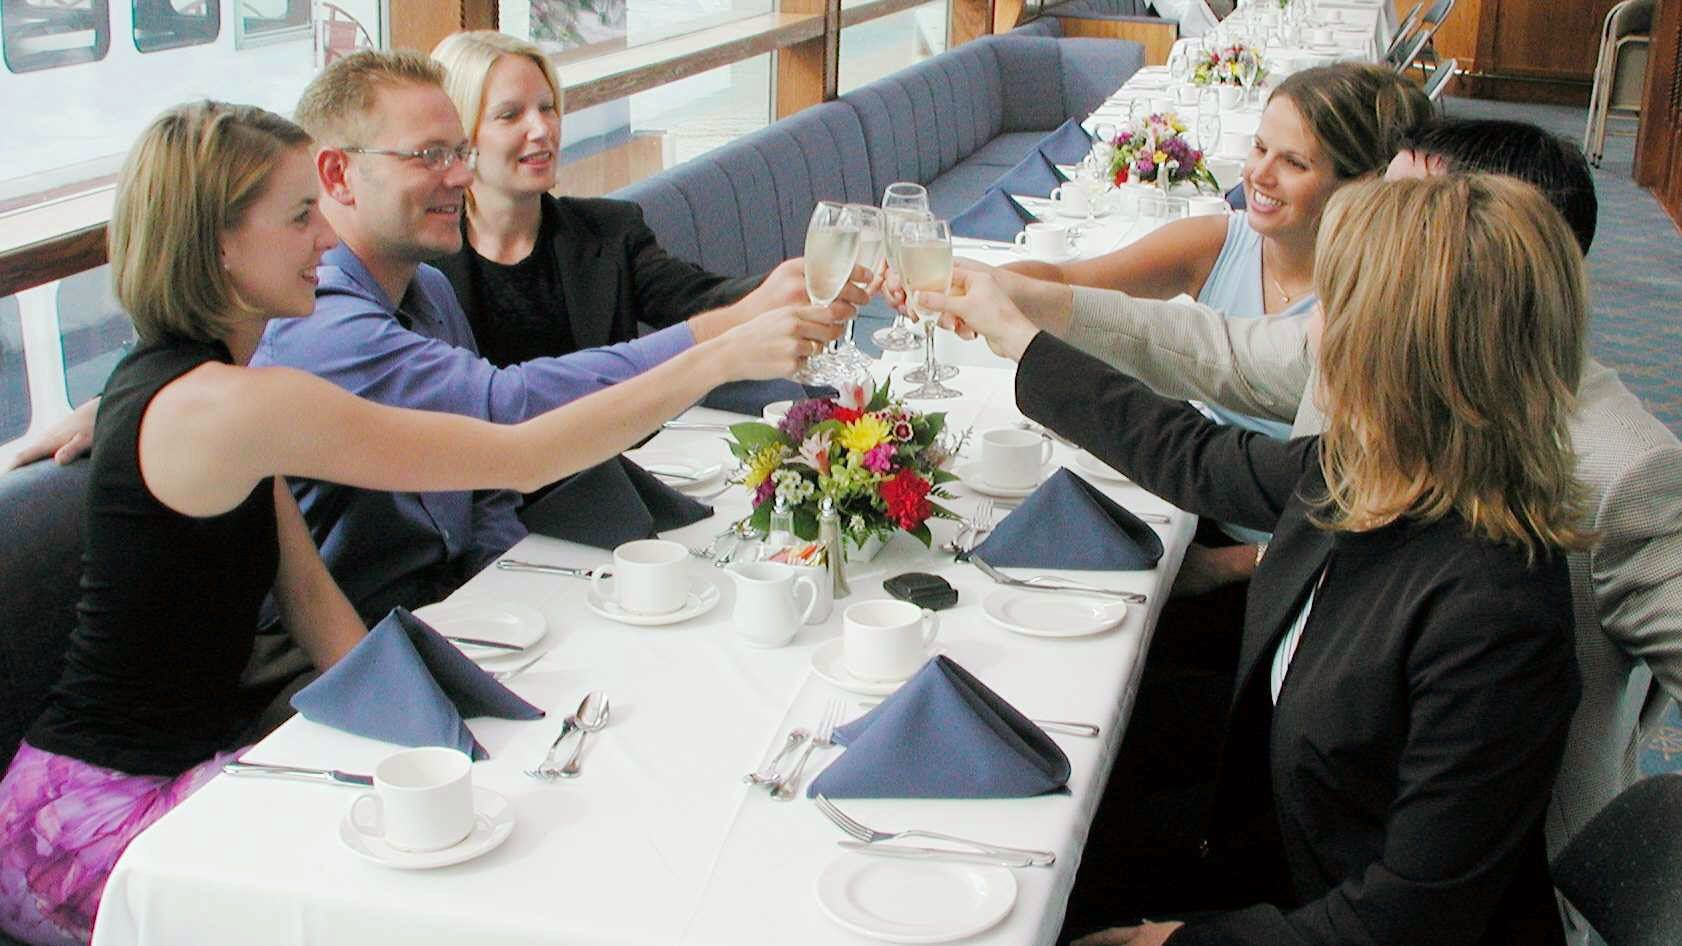 Group toasting glasses on the boat in Vancouver